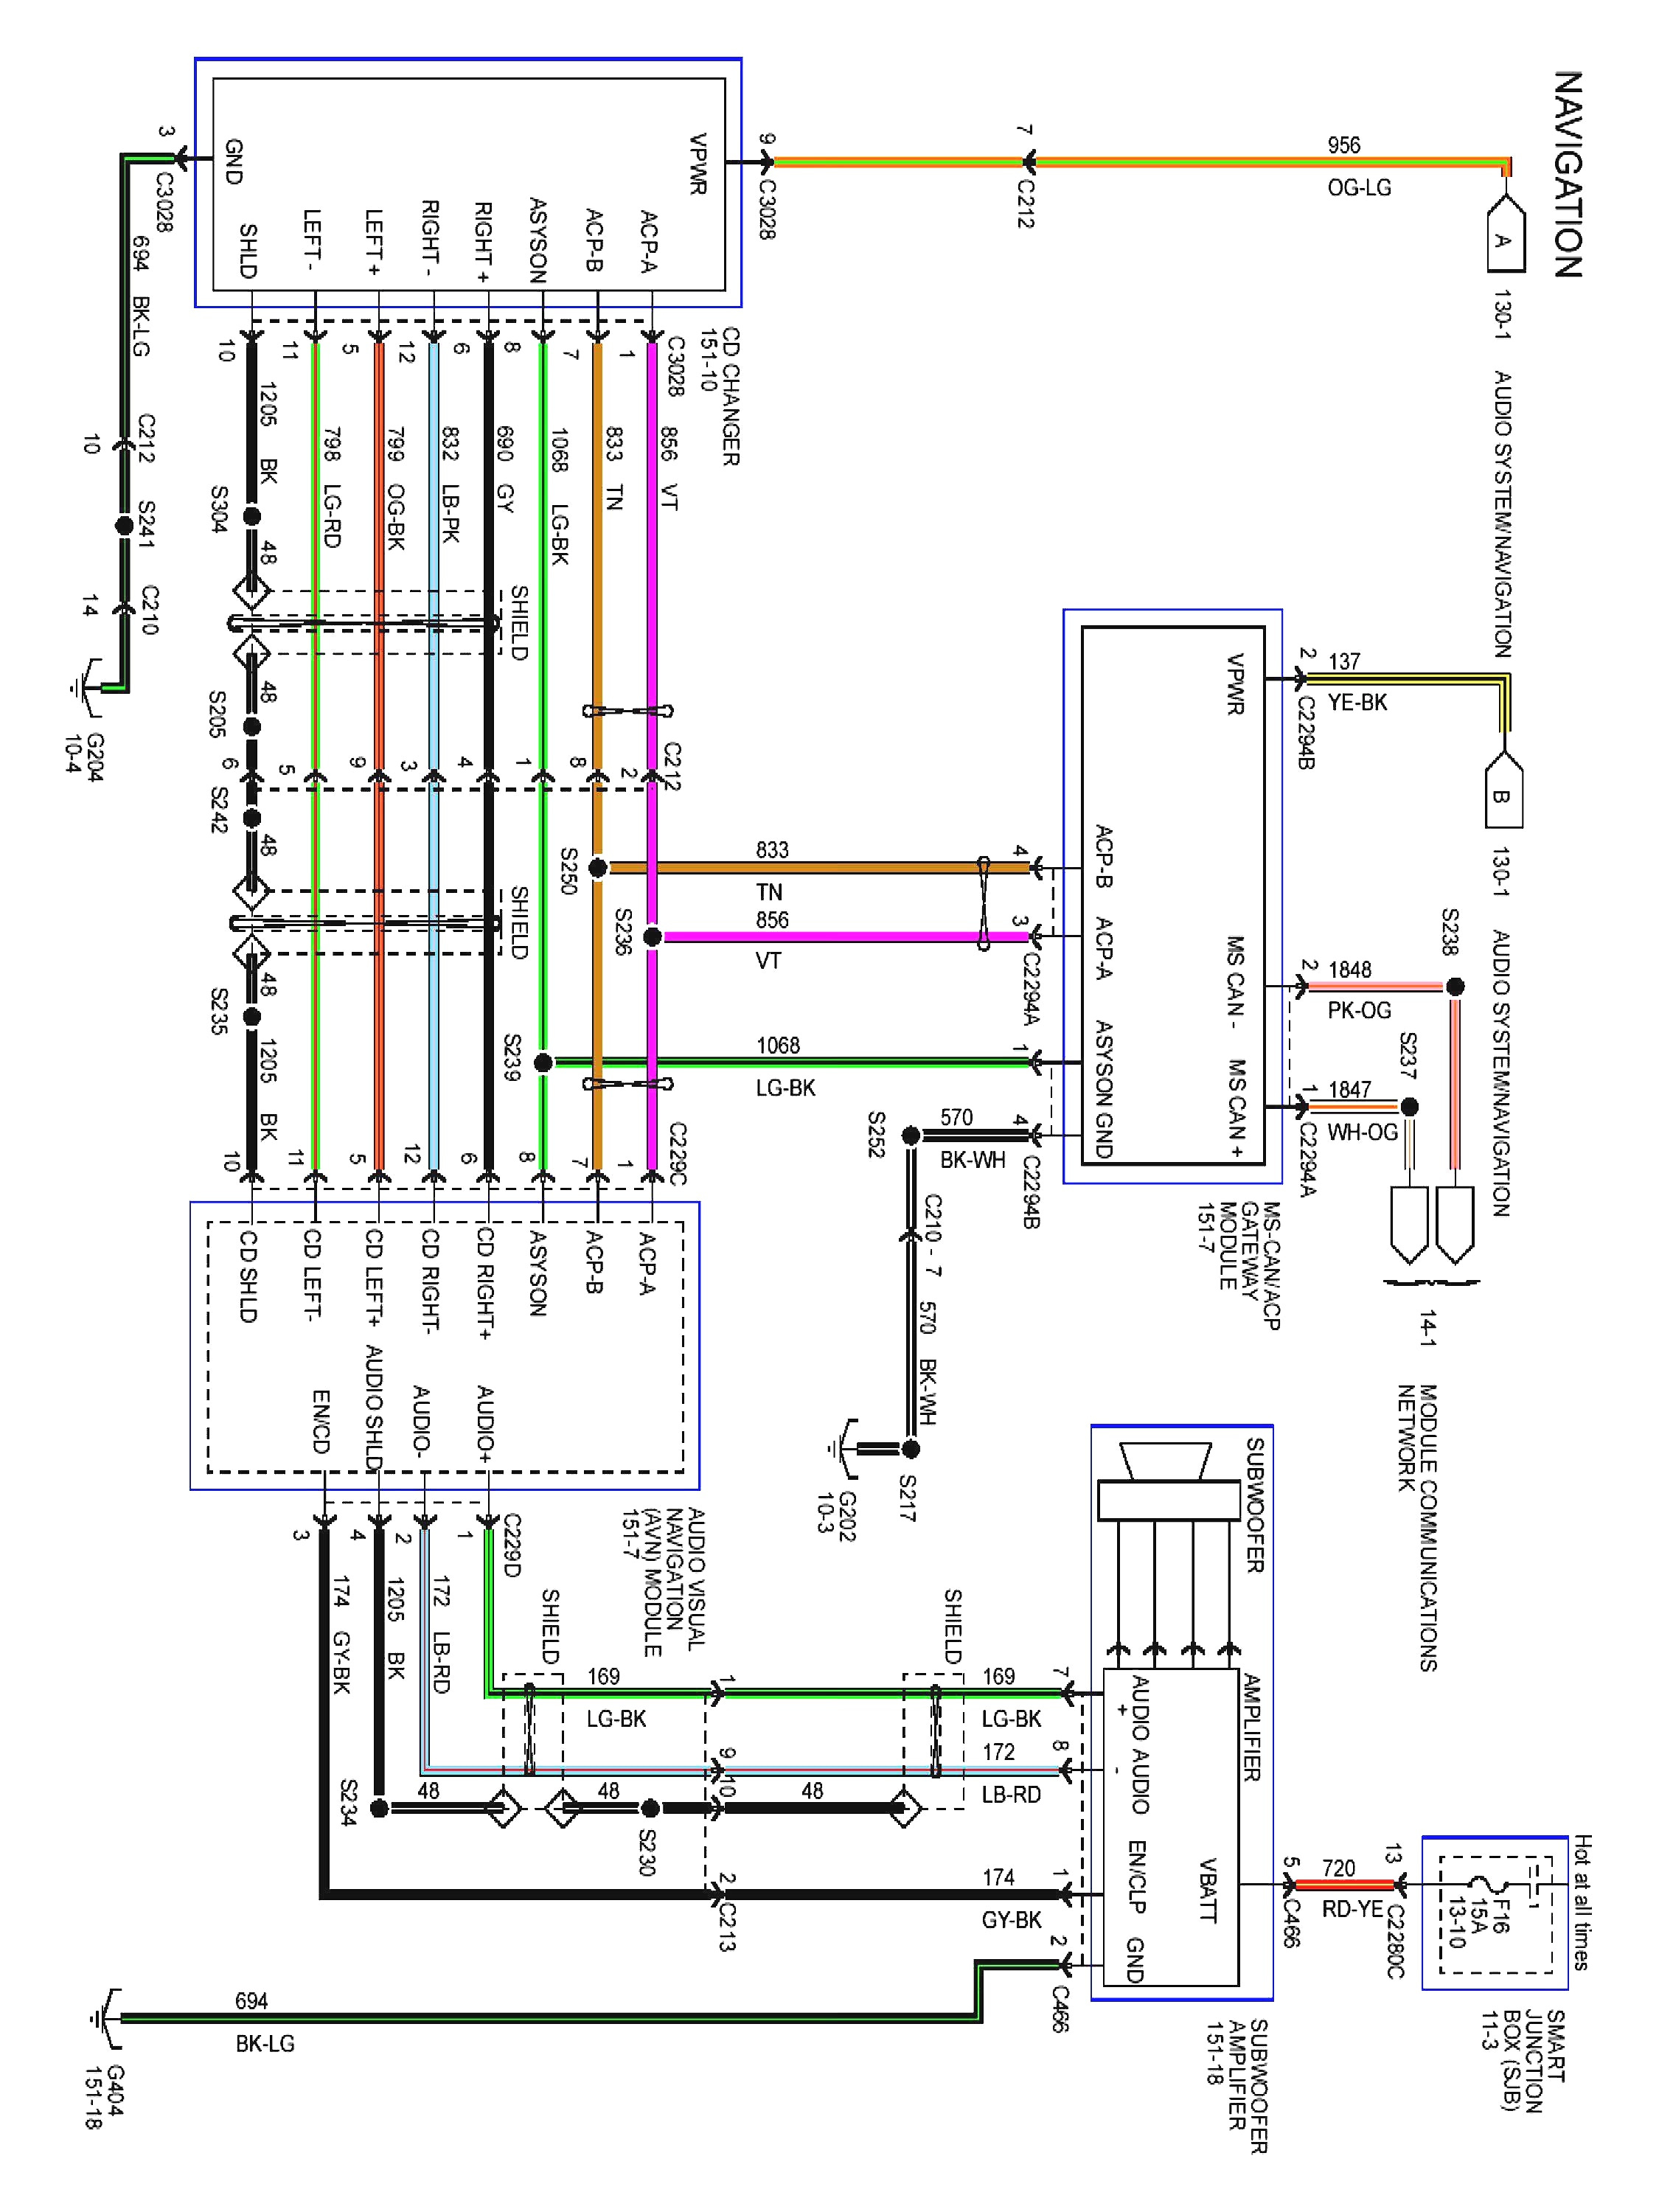 2002 Ford Escape Wiring Diagram Wiring Diagram Official Official Saleebalocchi It